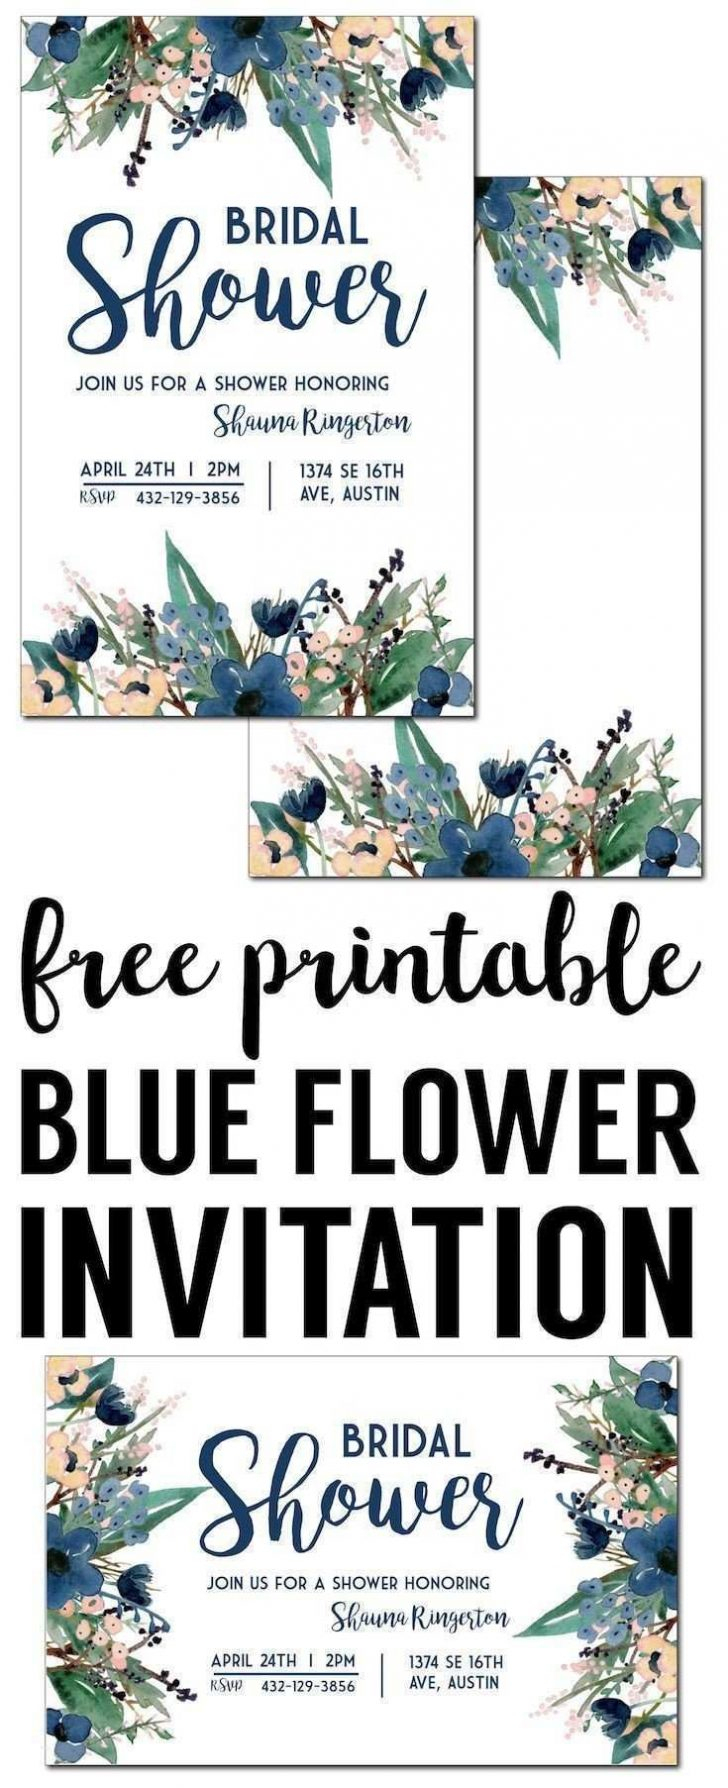 Reunion Invitation Ideas Beautiful Free Printable Family Reunion - Free Printable Family Reunion Invitations